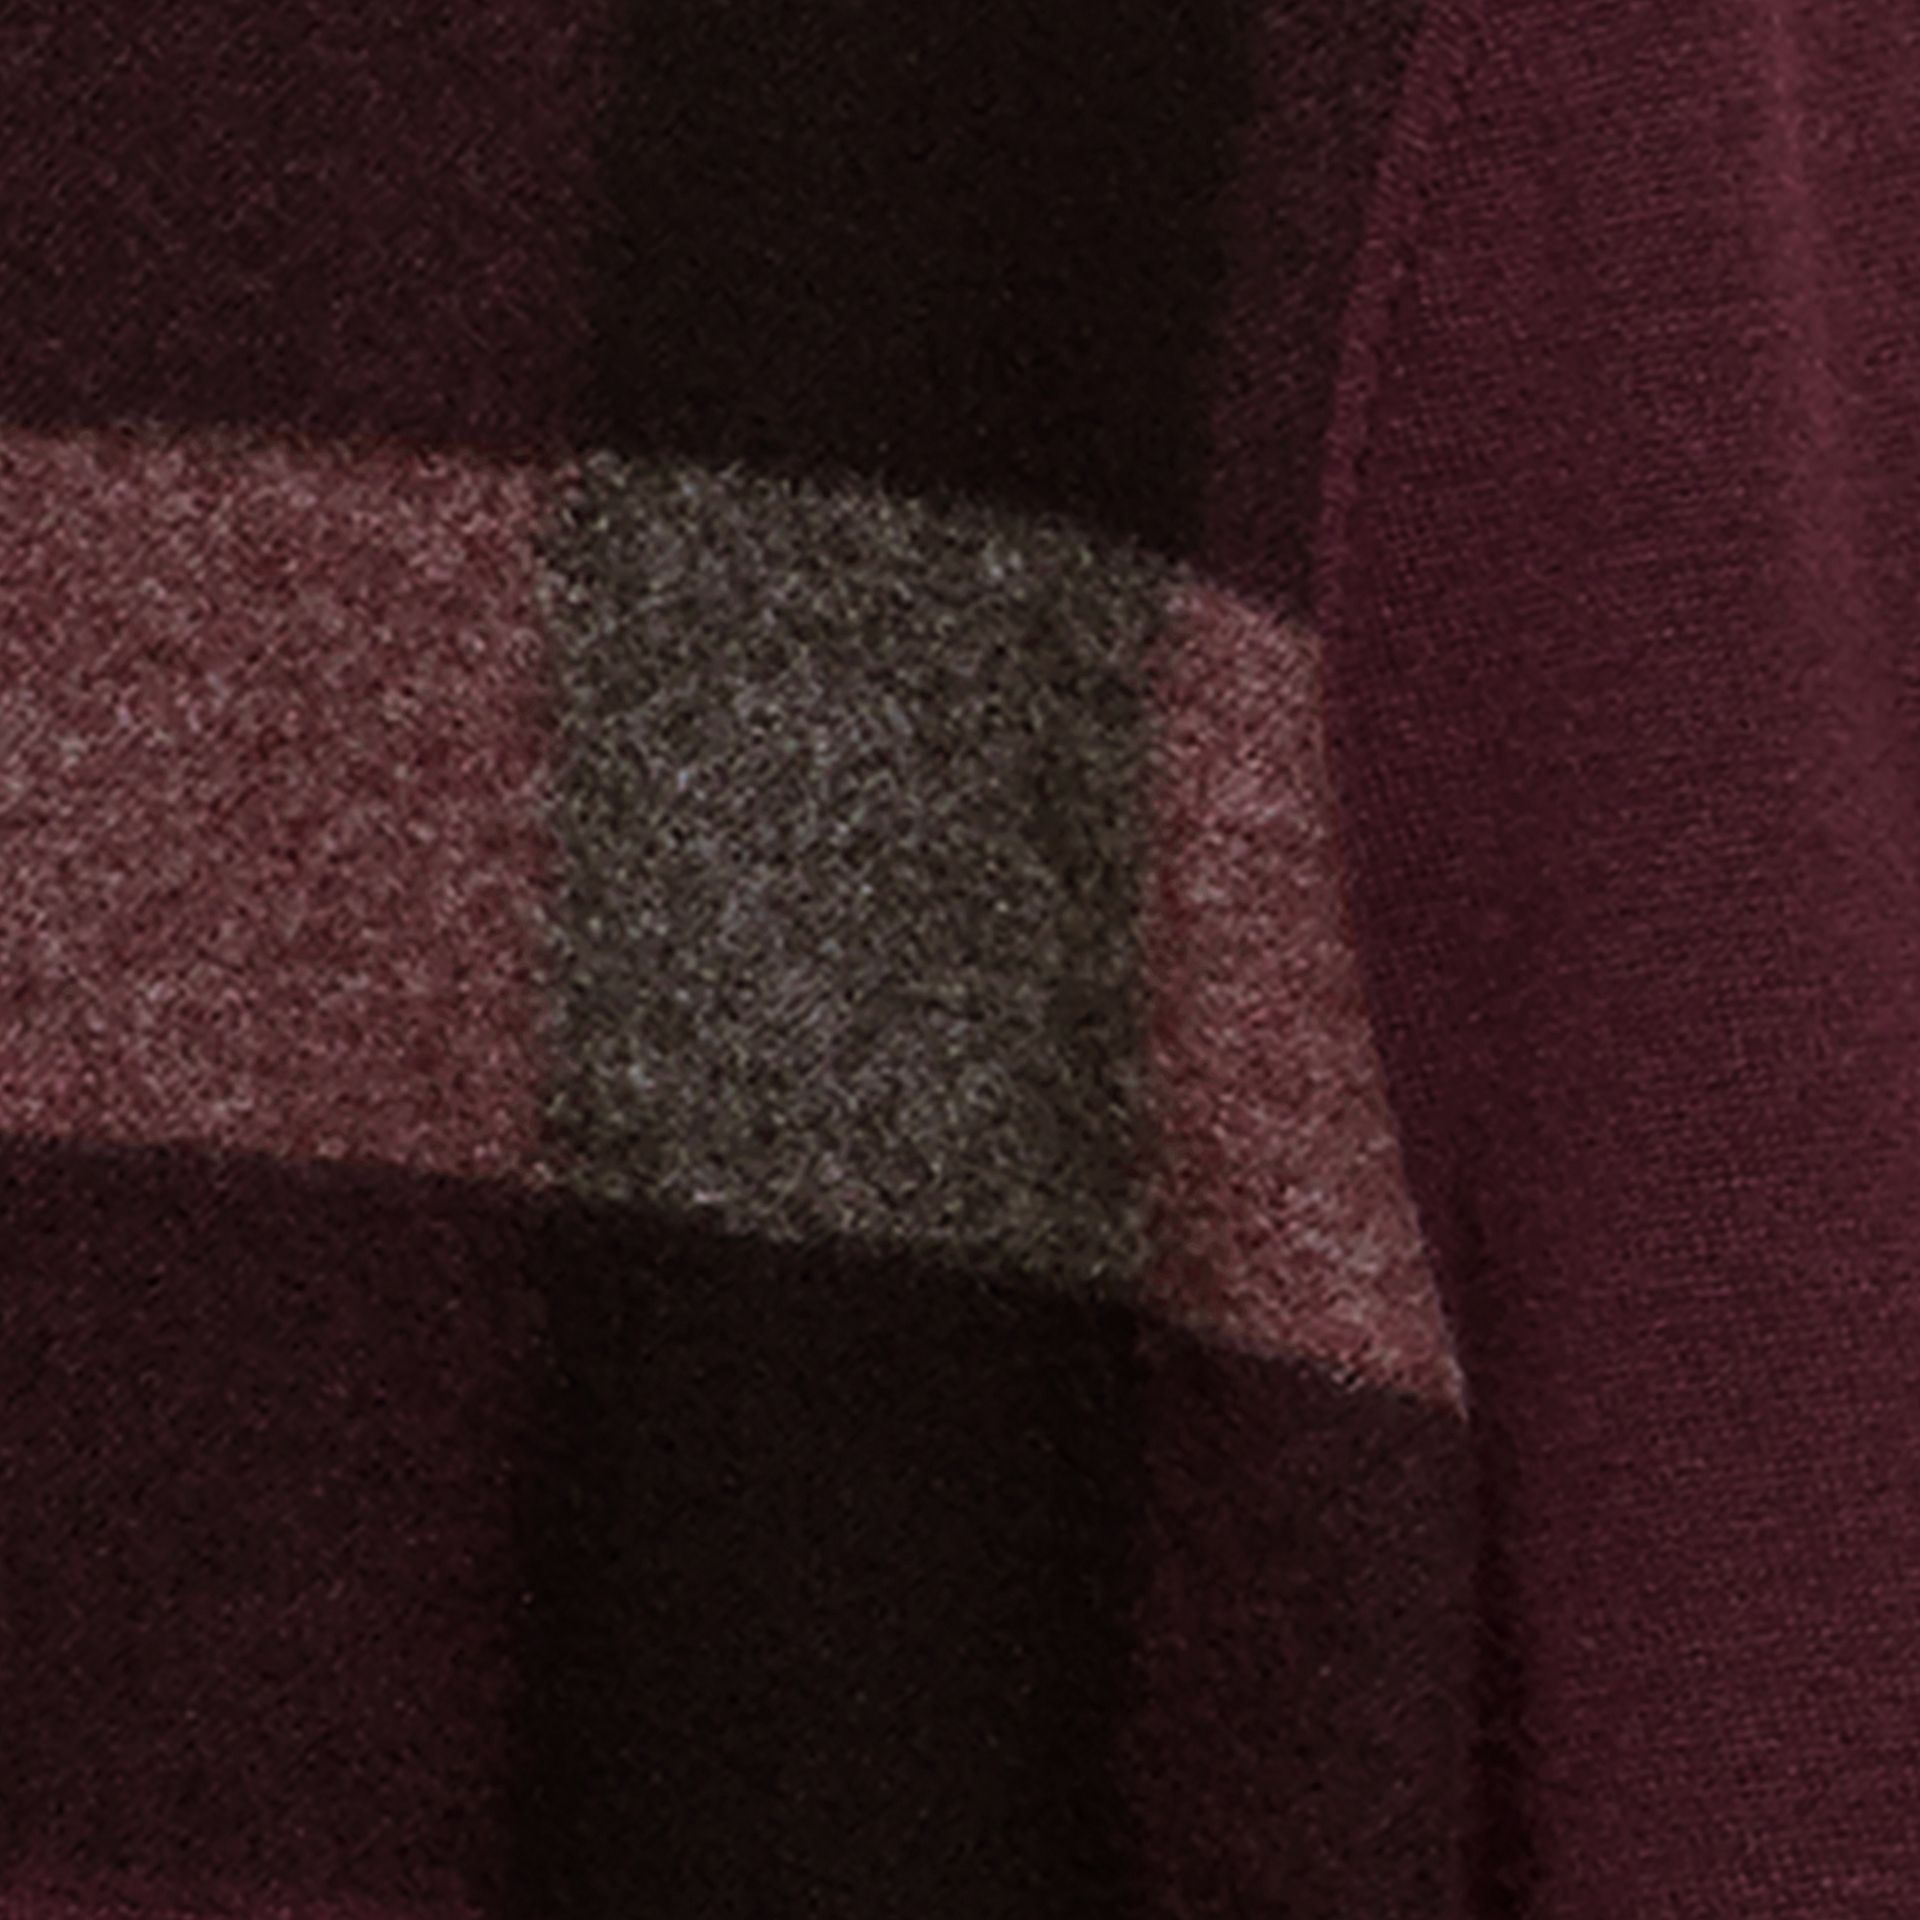 Graphic Check Cashmere Cotton Sweater in Burgundy Red - gallery image 2